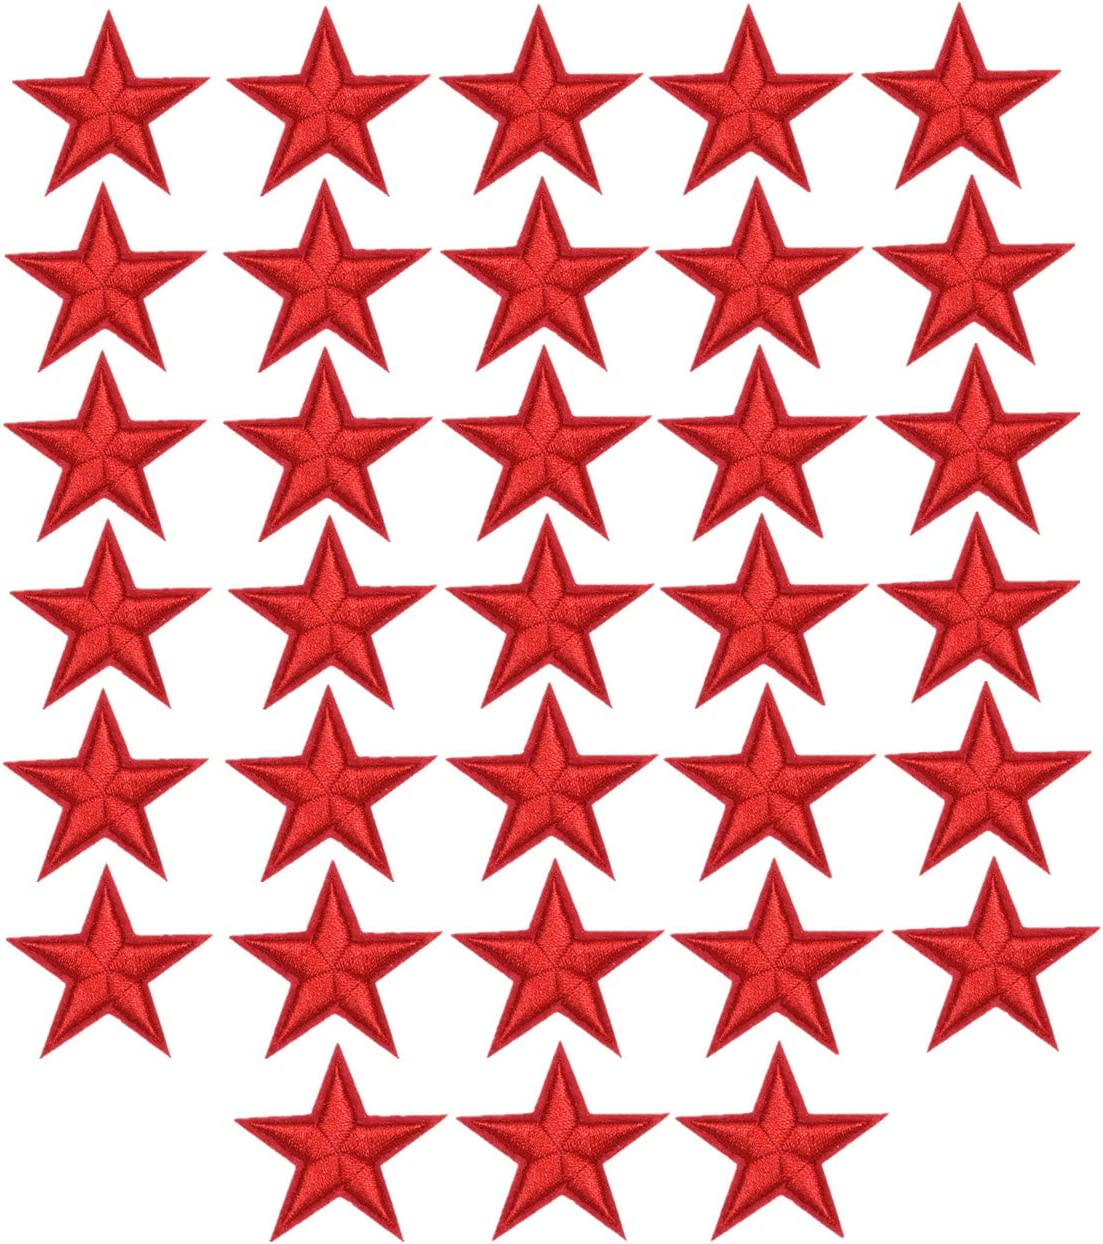 MSCFTFB 33 Pieces Assorted Colors Small 5 Omaha Mall Max 88% OFF Iron S Star Patches on